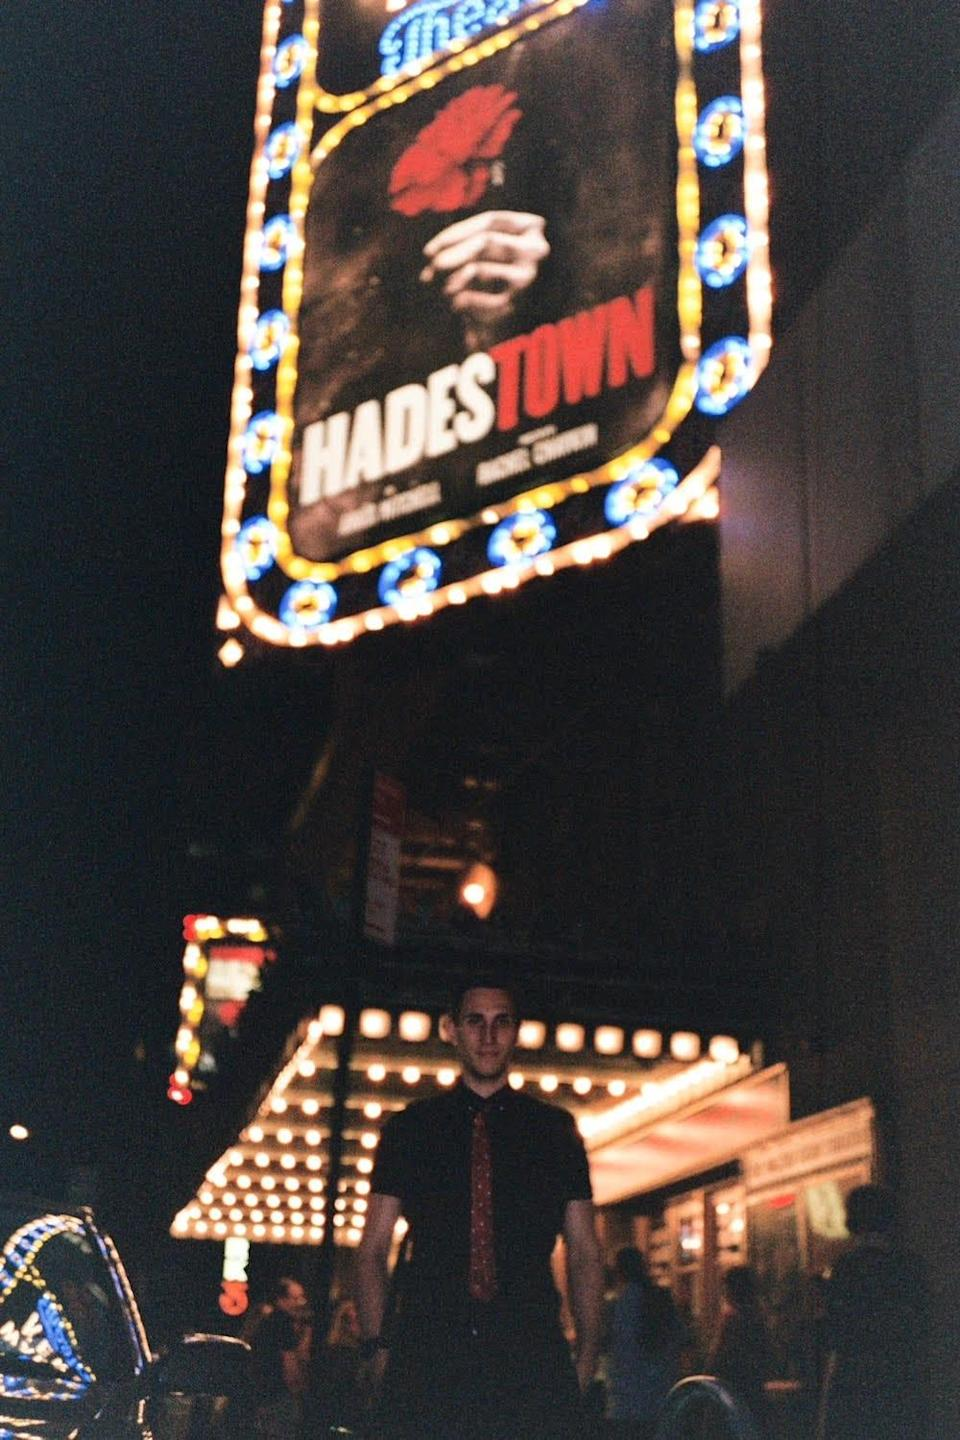 """Krause stands in front of the """"Hadestown"""" marquee. """"It's a really difficult career as it is, without having to contend with, will it come back? How will it come back?"""" Krause said."""